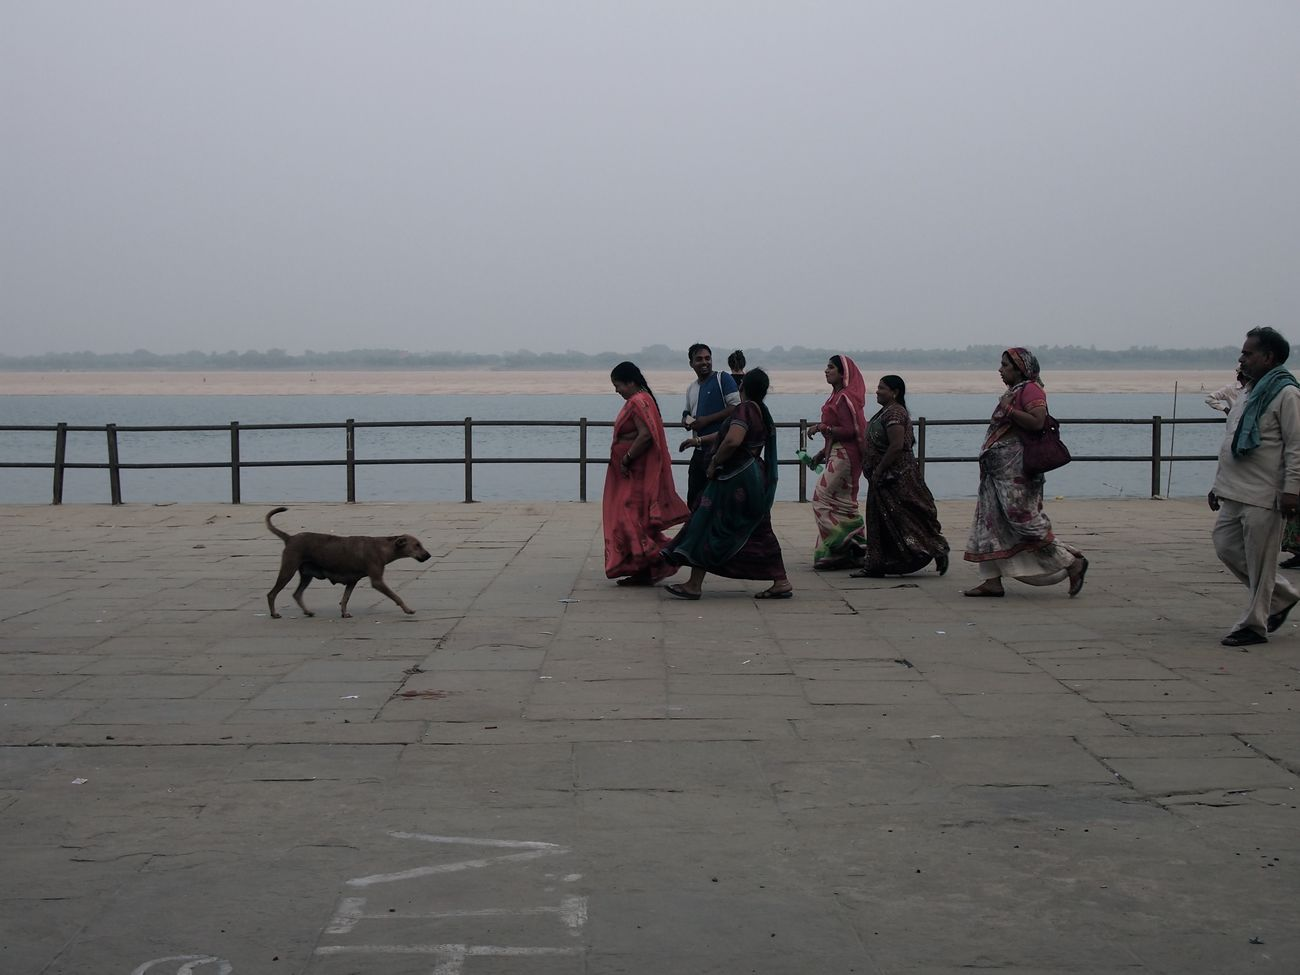 I against I Varanasi, India Ganges, Indian Lifestyle And Culture, Bathing In The Ganges,